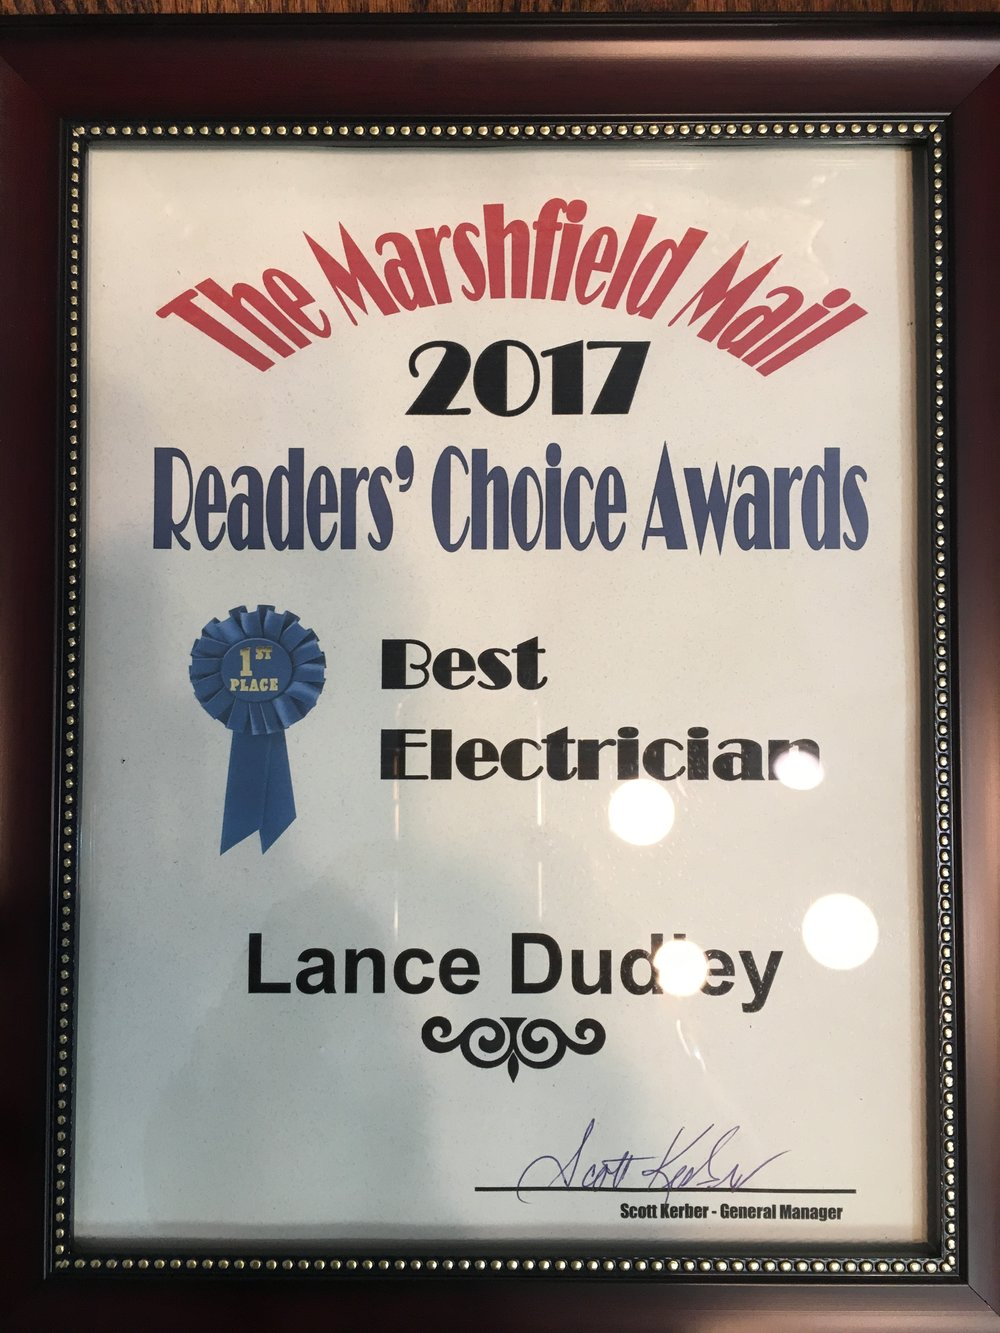 Lance - Best Electrician Marshfield Mail